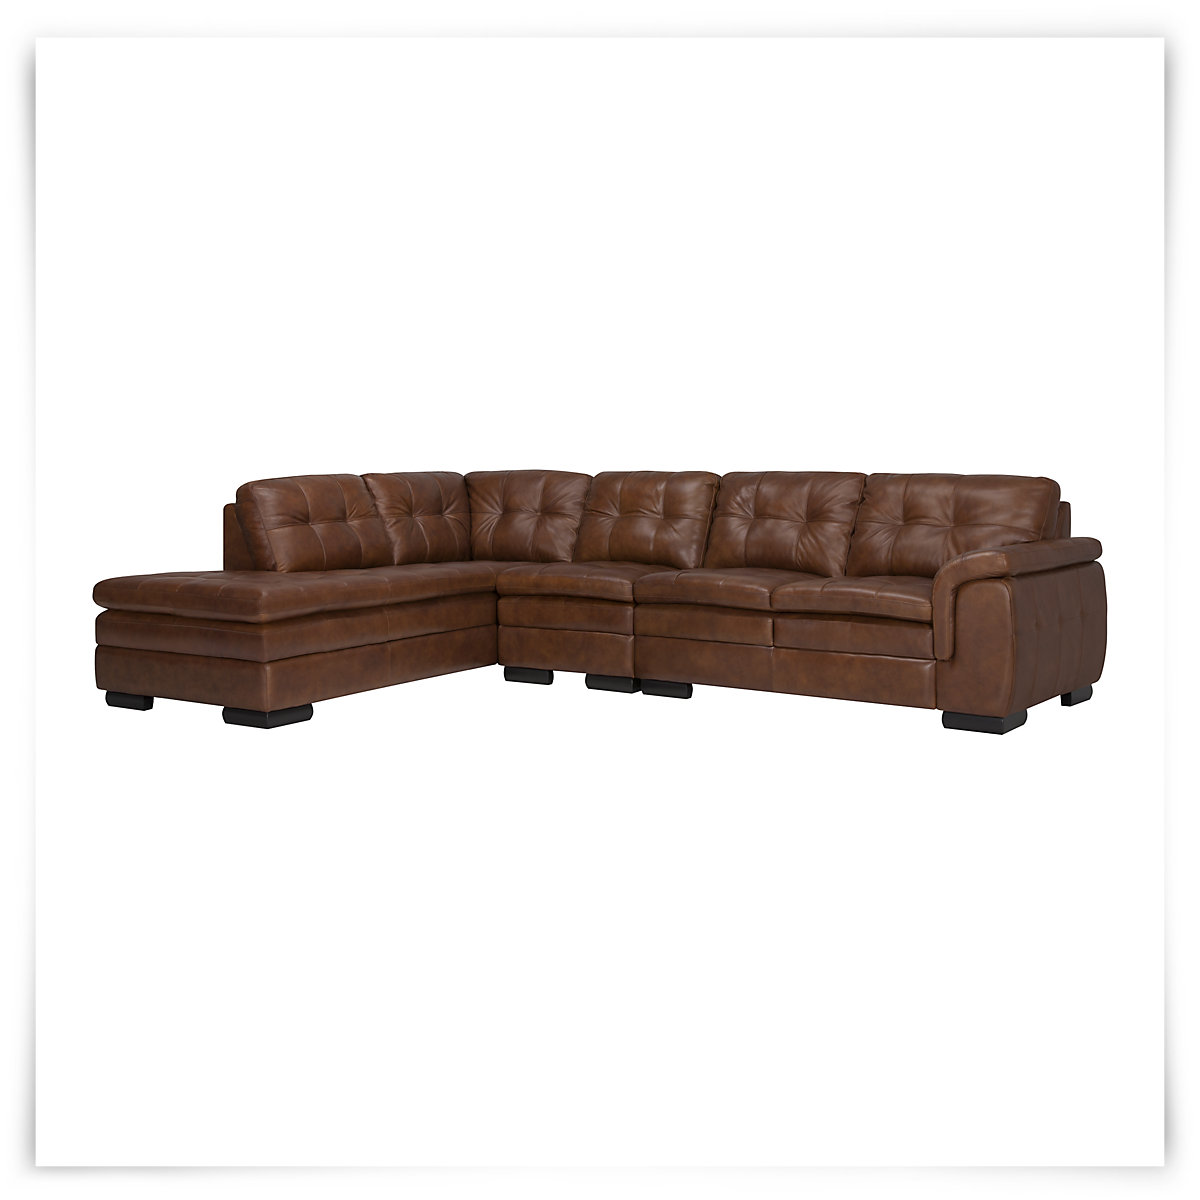 Trevor md brown leather lg left chaise sect for Brown leather chaise